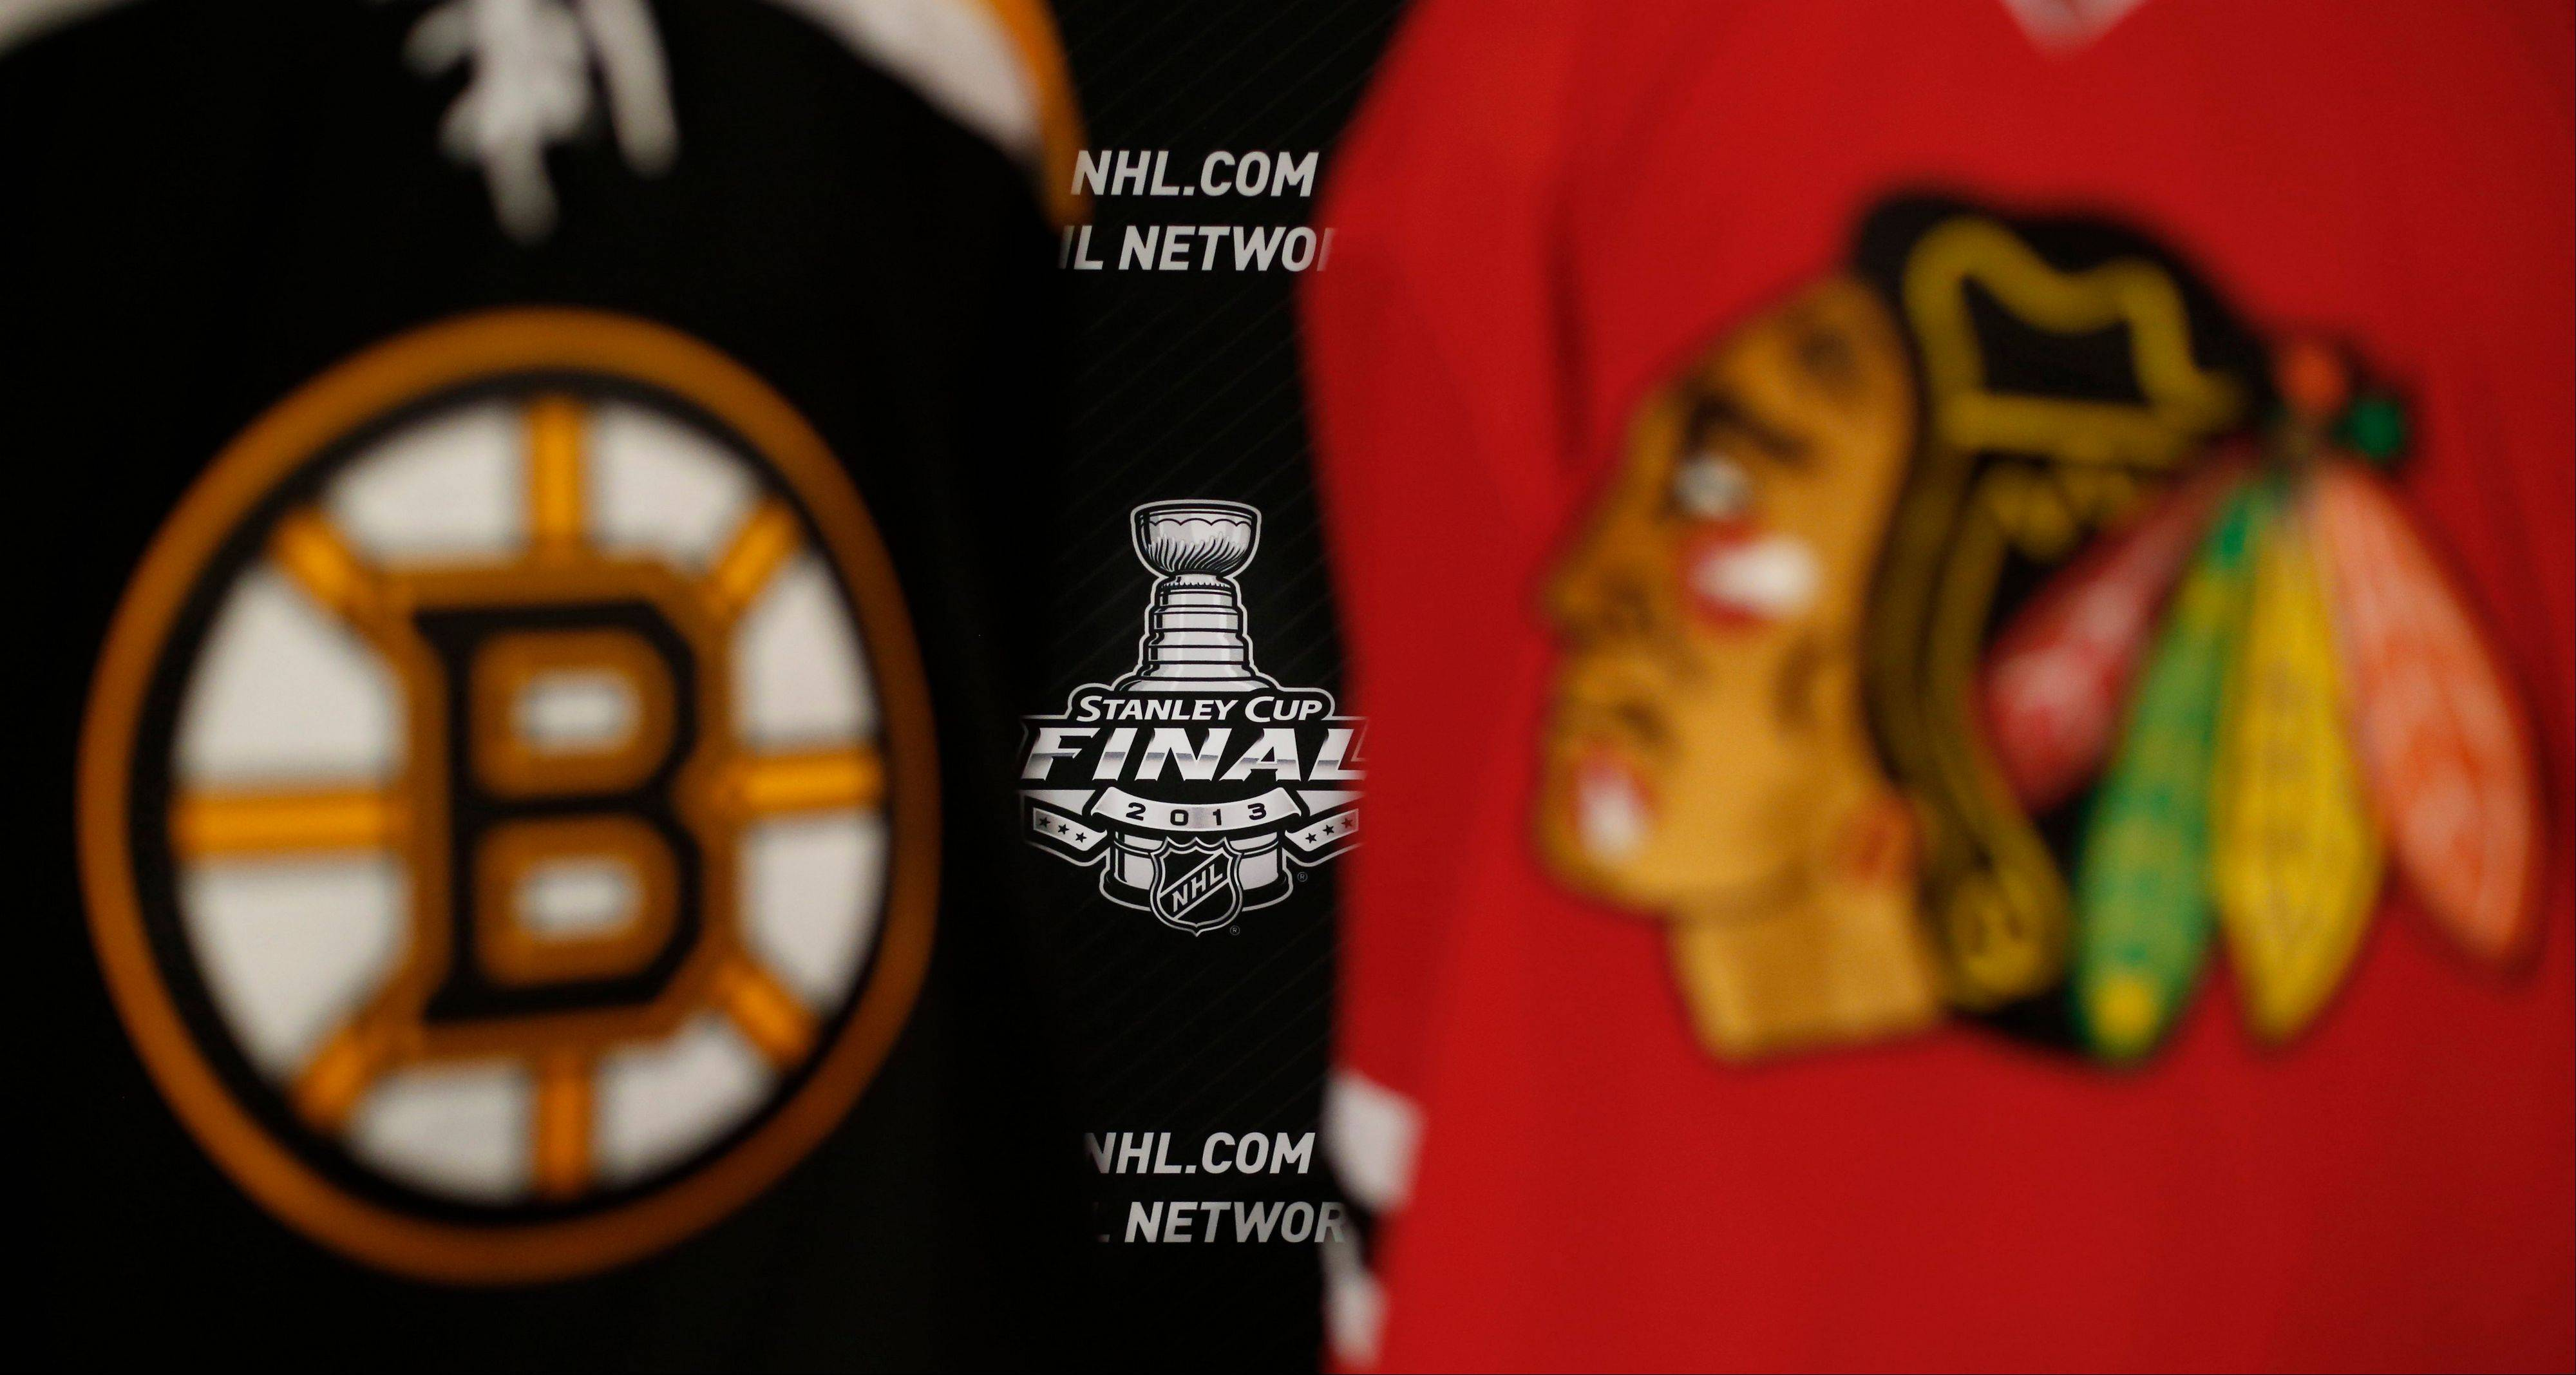 The 2013 NHL Stanley Cup log is seen between the sweaters of the Boston Bruins and the Blackhawks Tuesday in Chicago. The first game of the Stanley Cup is Wednesday at the United Center.